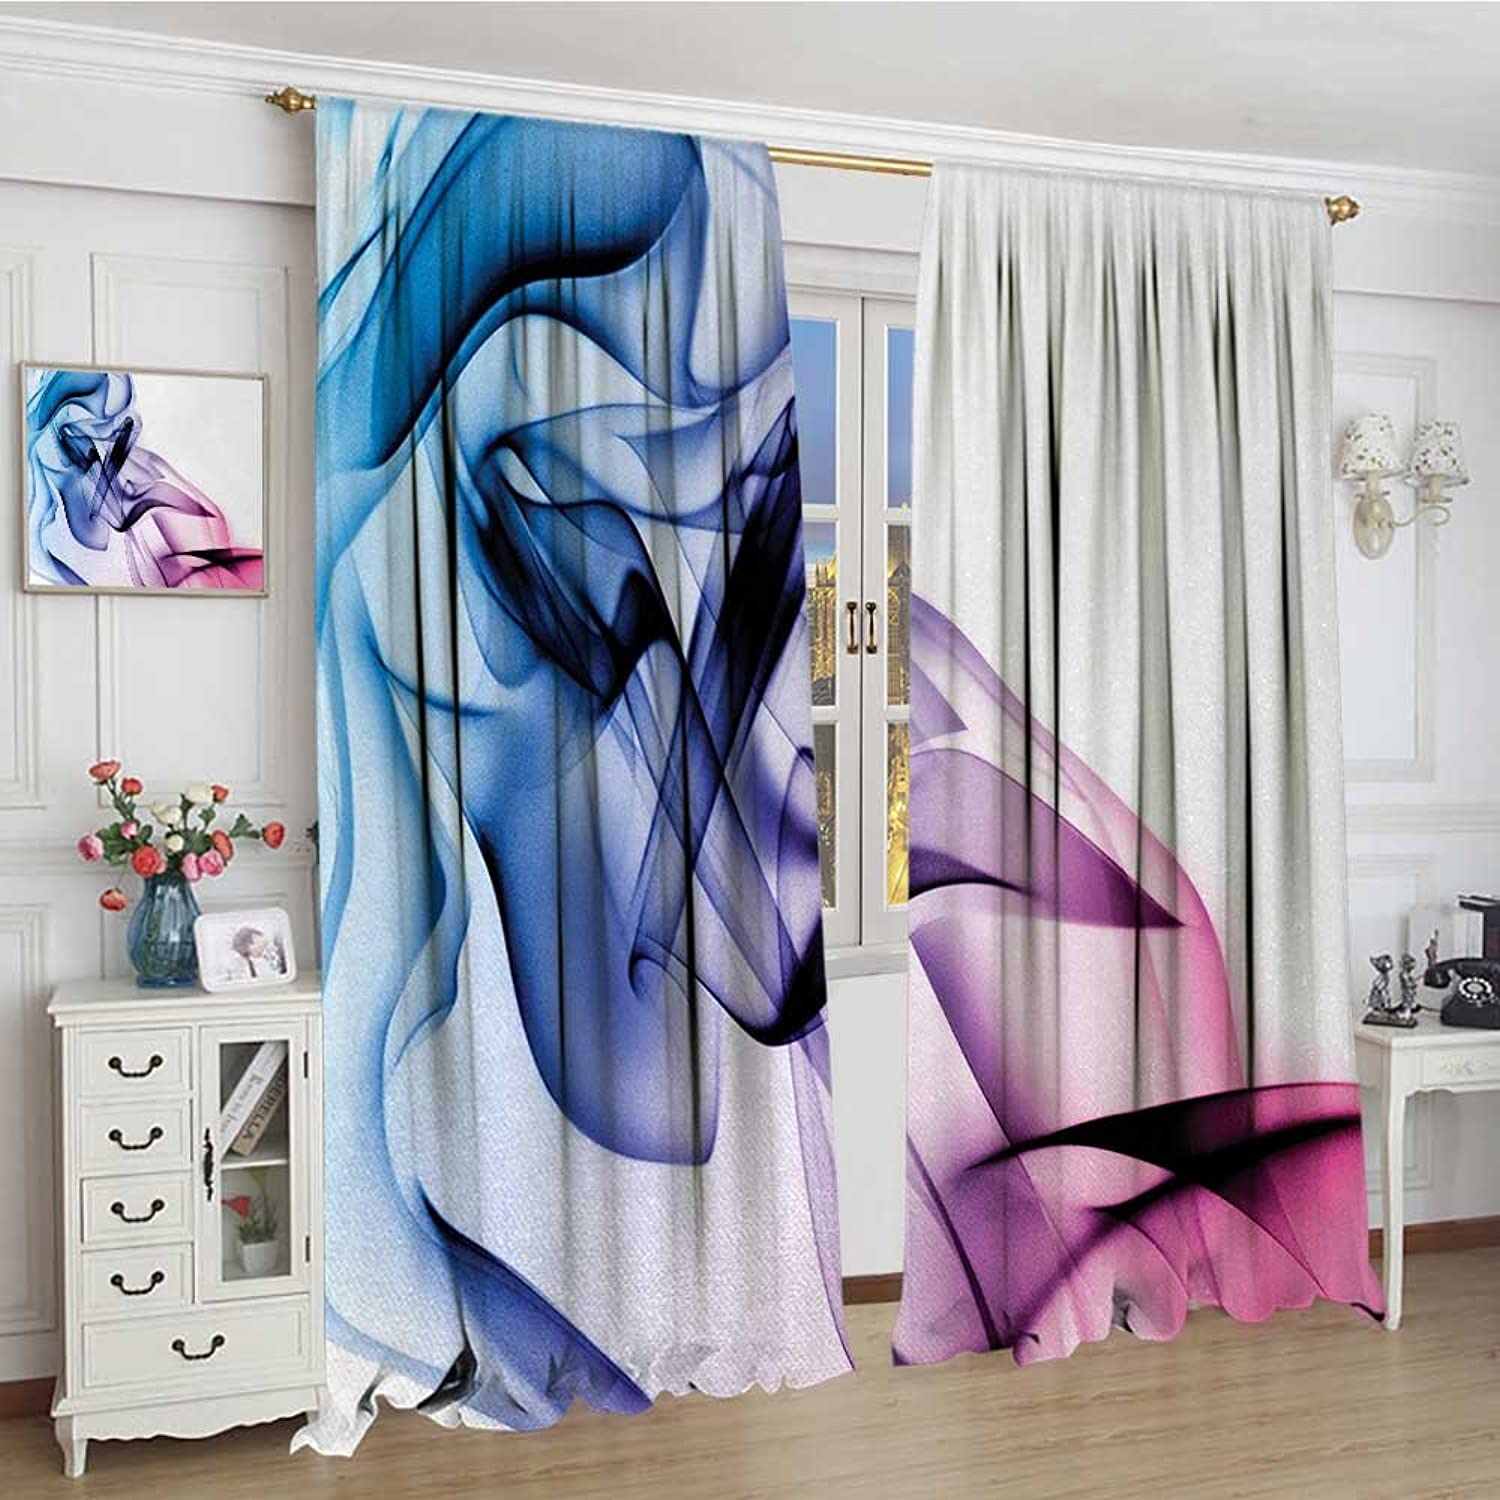 Smallbeefly Abstract Thermal Insulating Blackout Curtain Abstract Artwork with colorful Smoke Dynamic Flow Swirl Contemporary Artwork Decorative Curtains for Living Room 96 x96  Fuchsia bluee